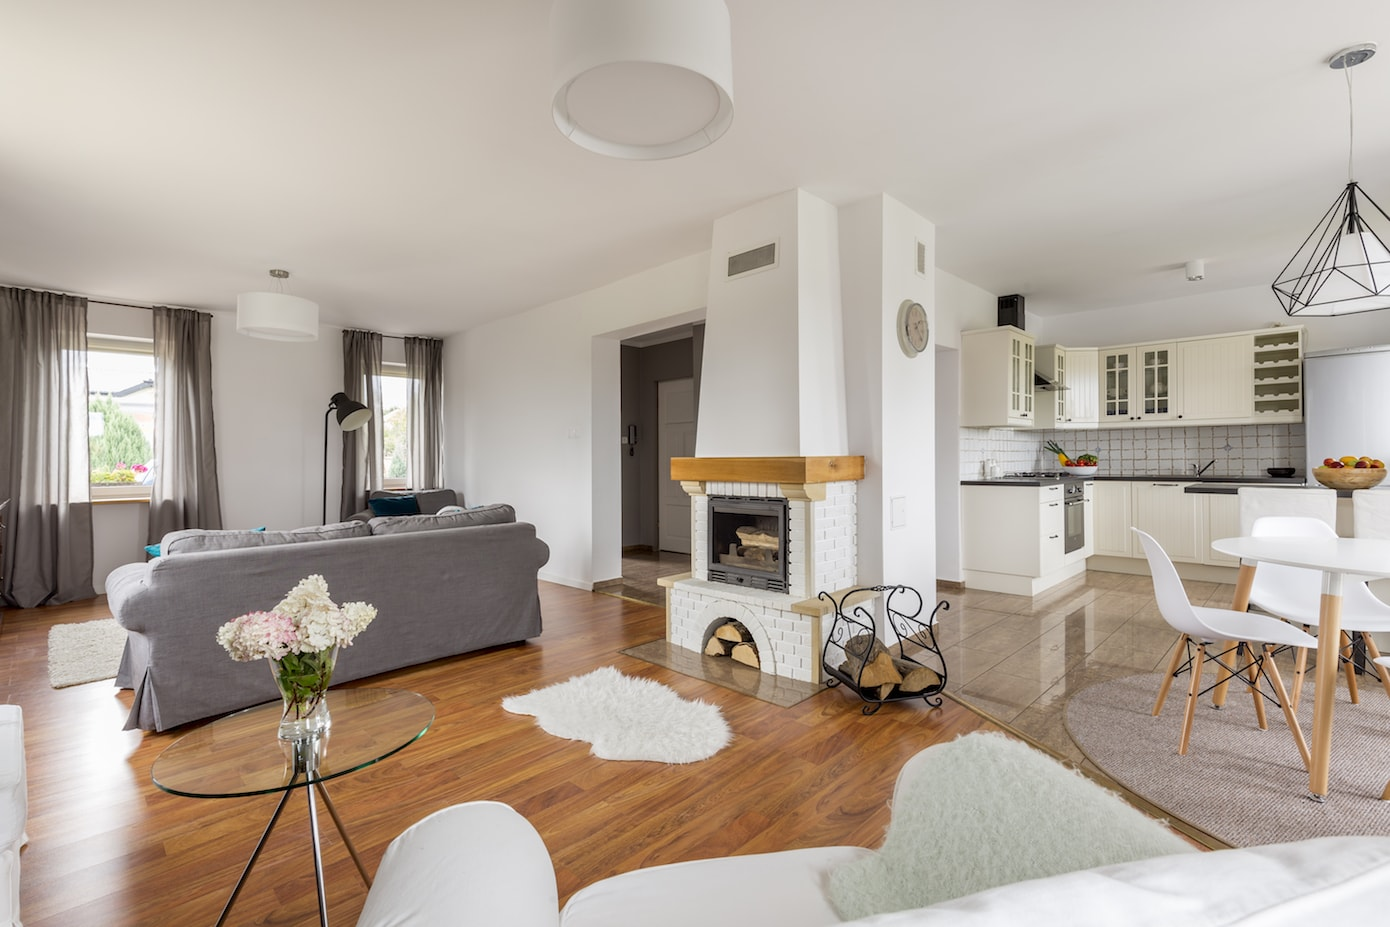 Cosy neutral open home planning zones